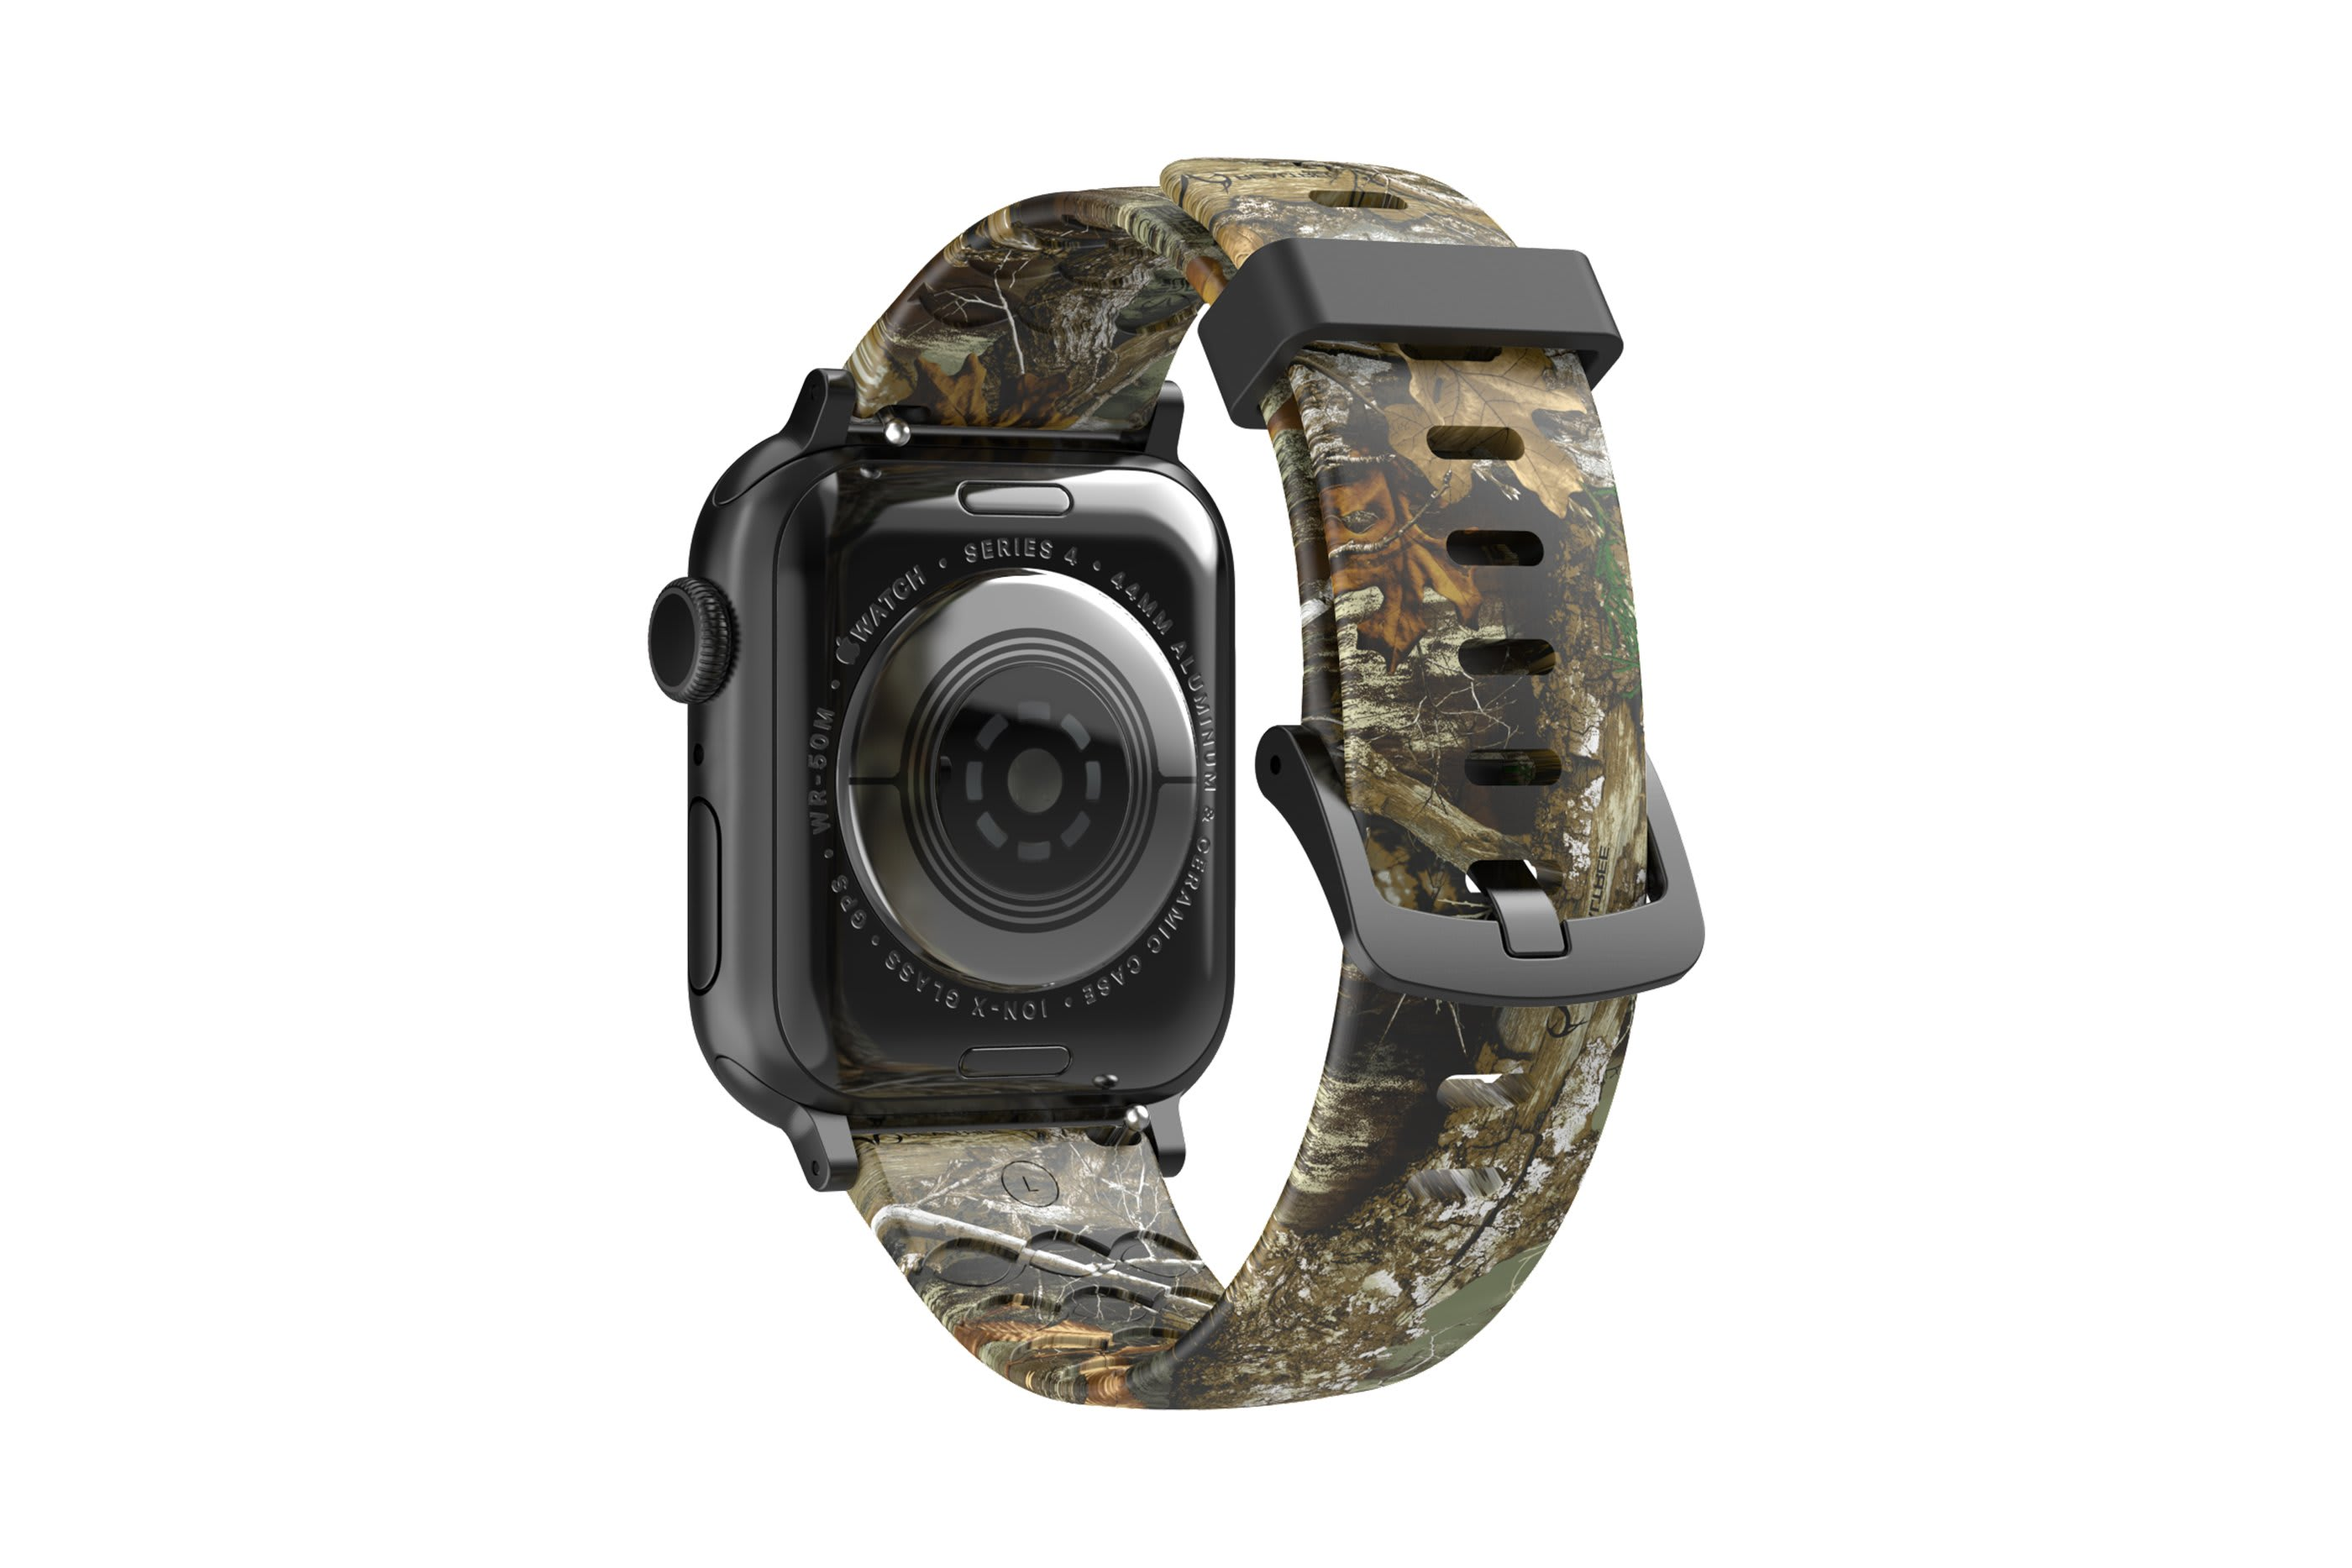 Realtree Edge Apple Watch band with silver hardware viewed top down